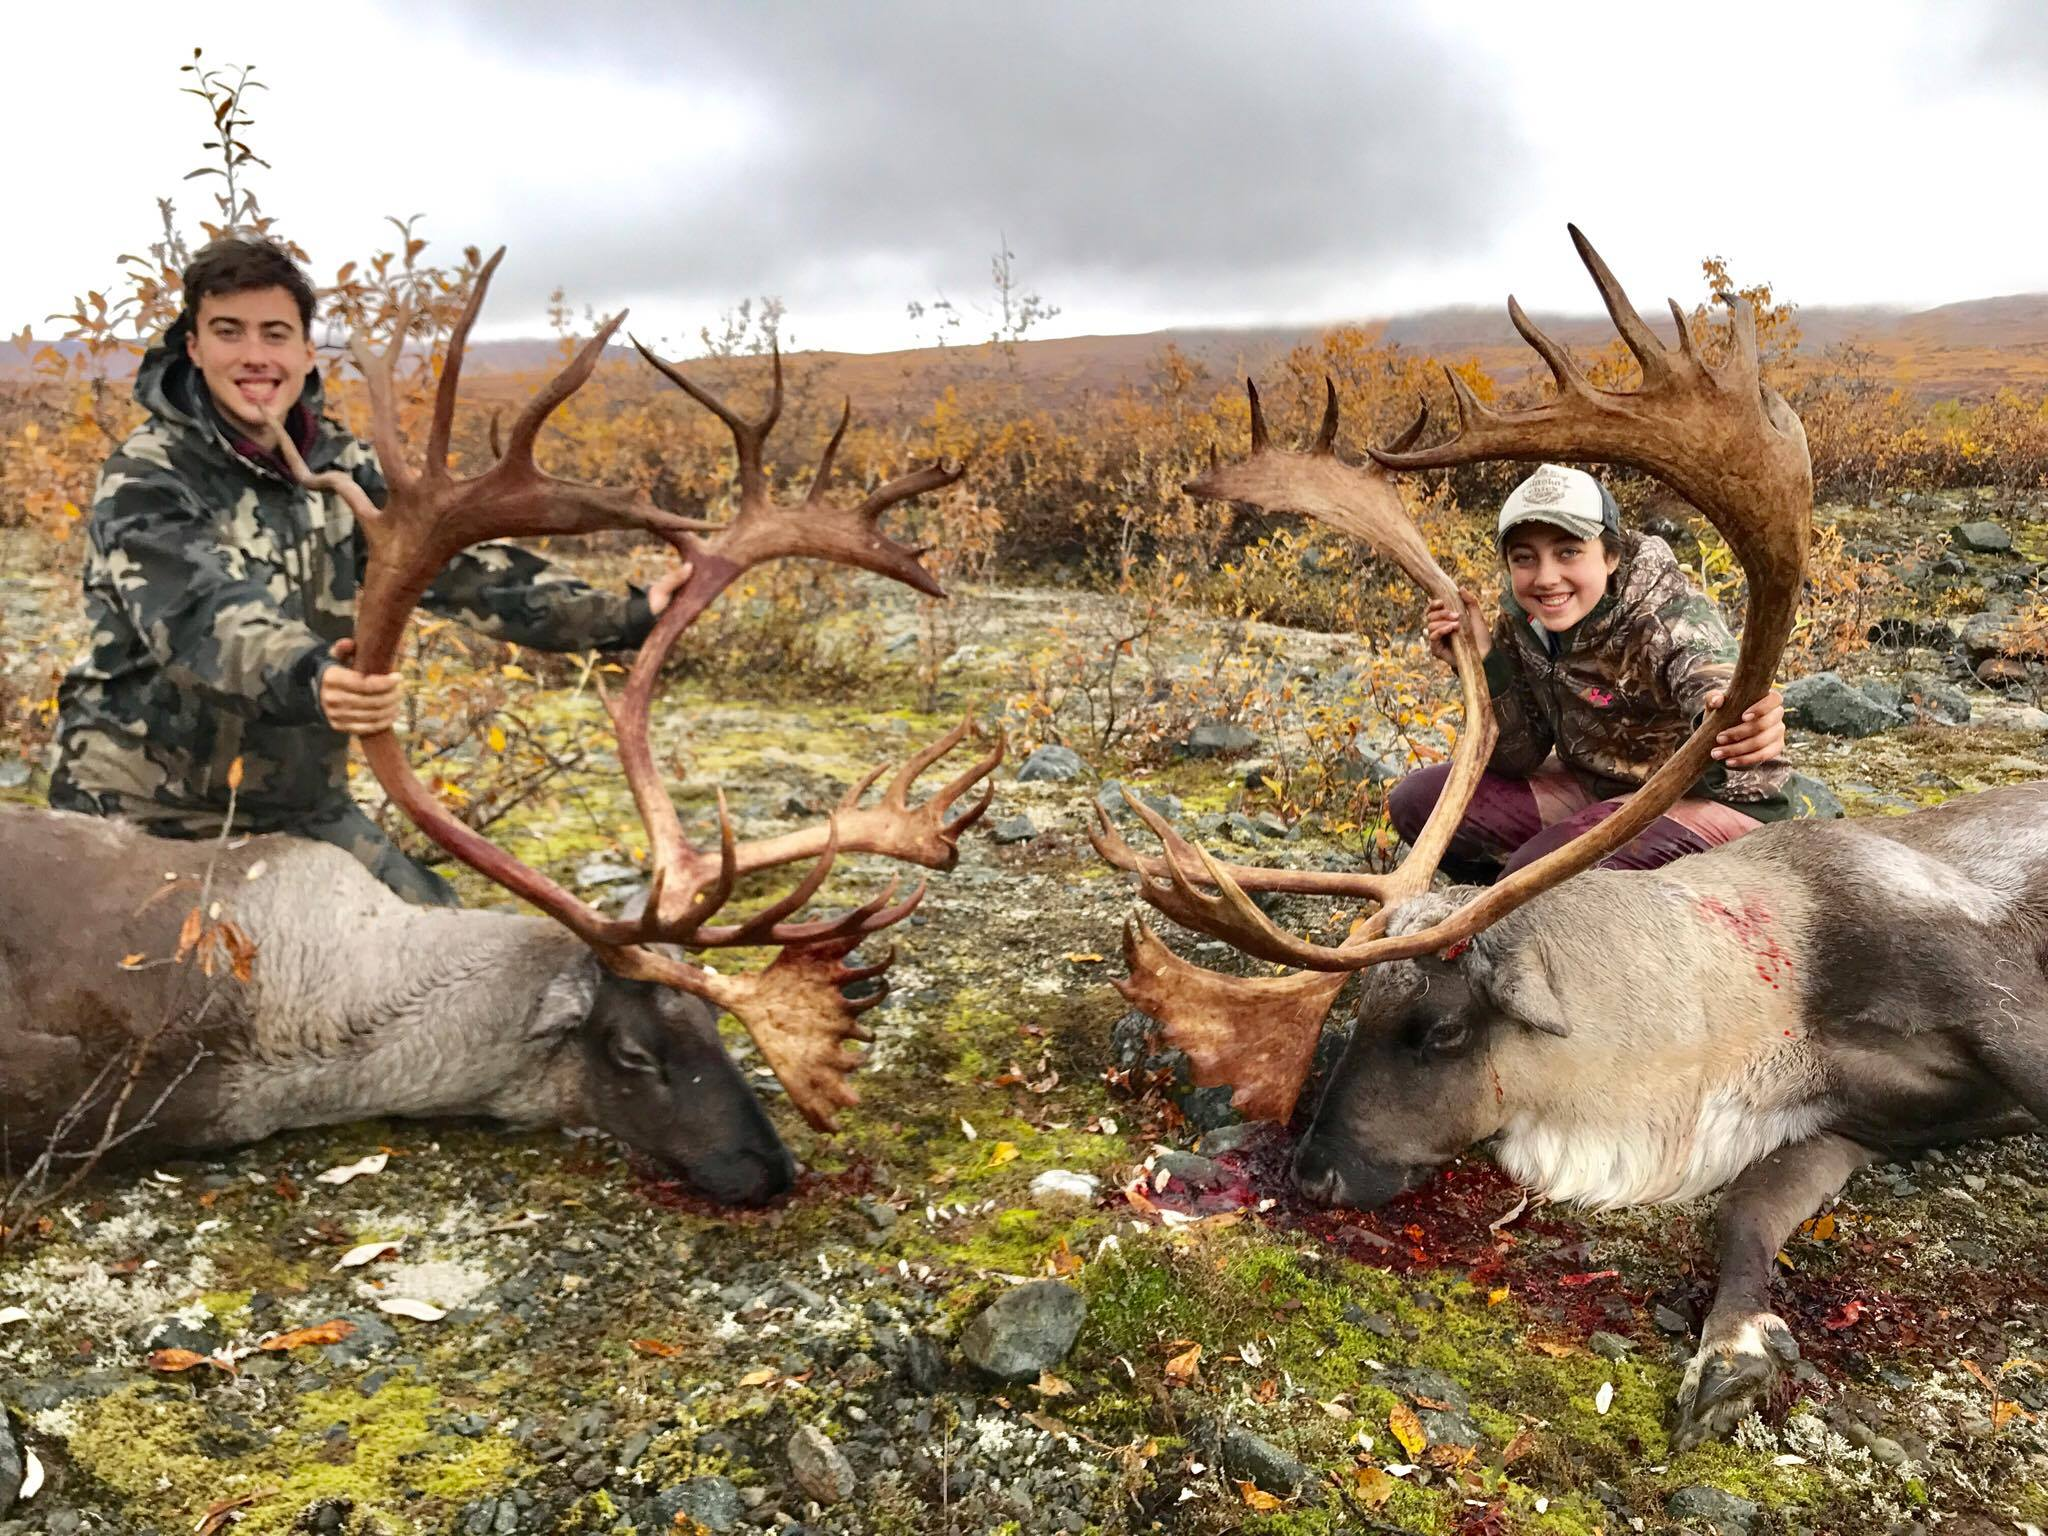 Taking kids hunting is the best way to connect them with the future of wildlife conservation.